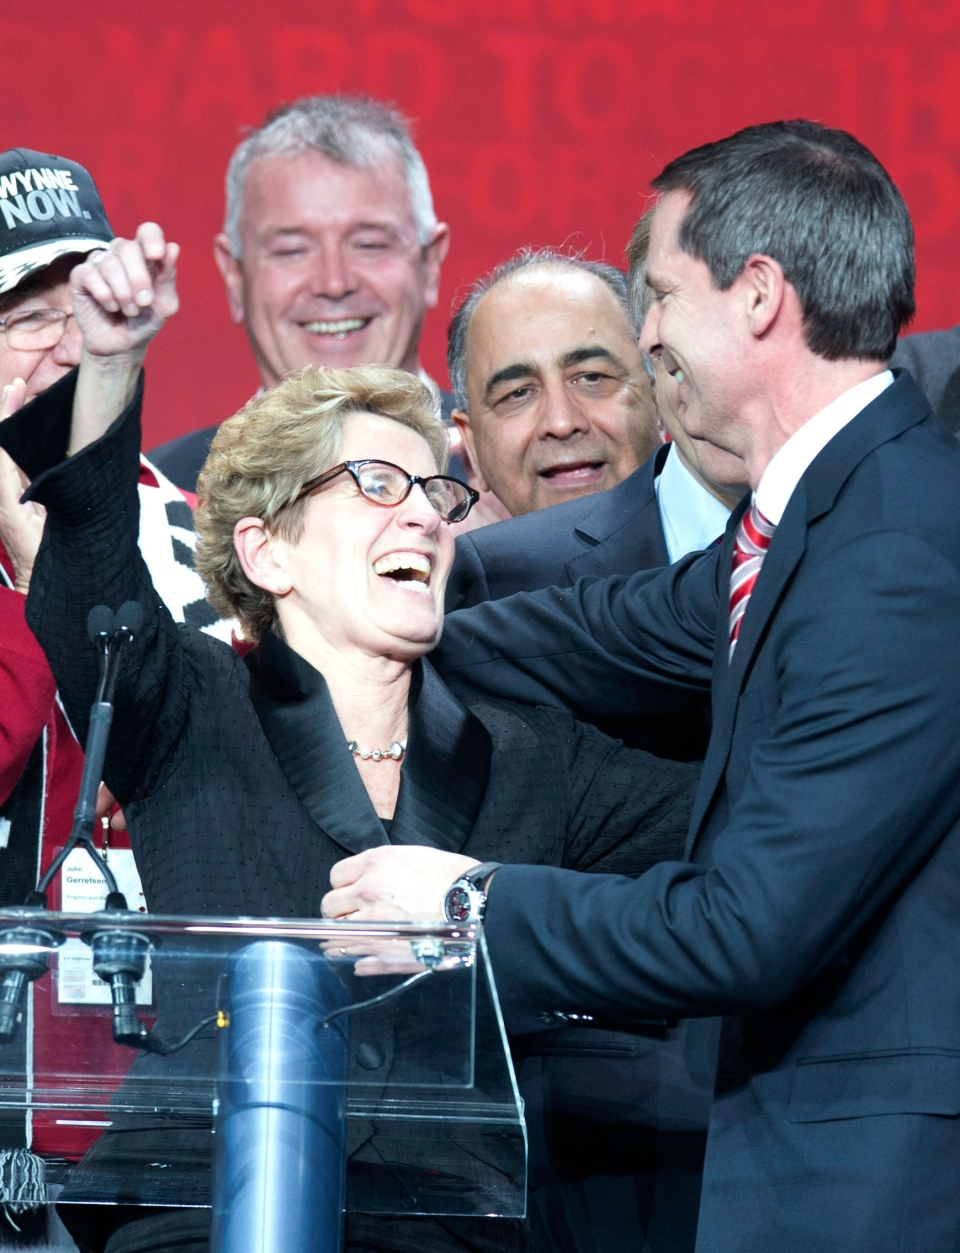 Premier Dalton McGuinty, right, congratulates Kathleen Wynne after Wynne becomes the new leader of the Ontario Liberal party at the Ontario Liberal Leadership convention in Toronto on Saturday, January 26, 2013. (Frank Gunn / THE CANADIAN PRESS)